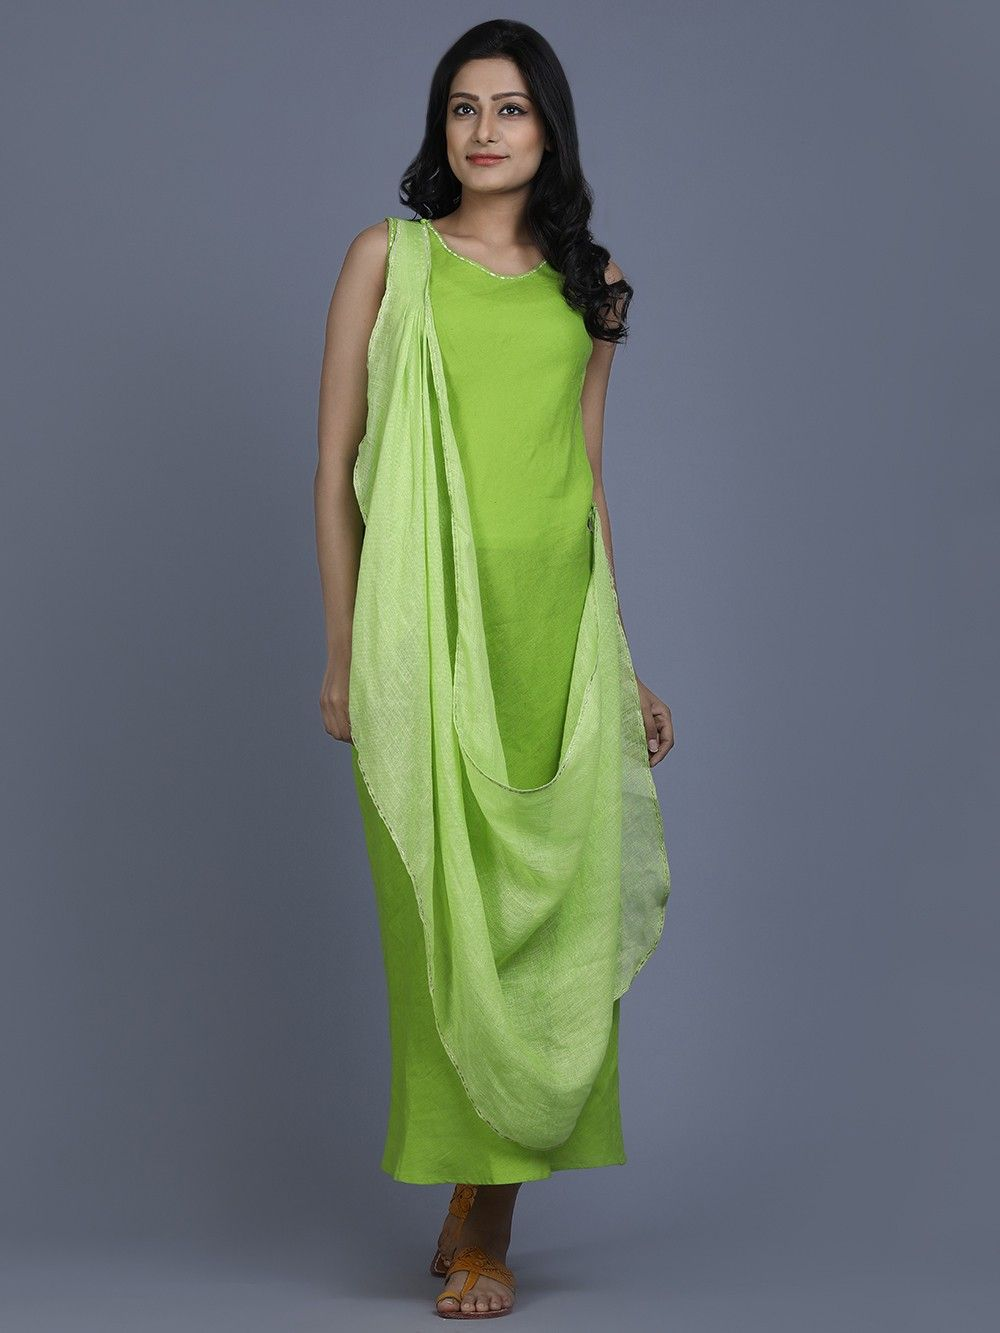 91bf7602ff Buy Lime Green Linen Long Santorini Dress online at Theloom